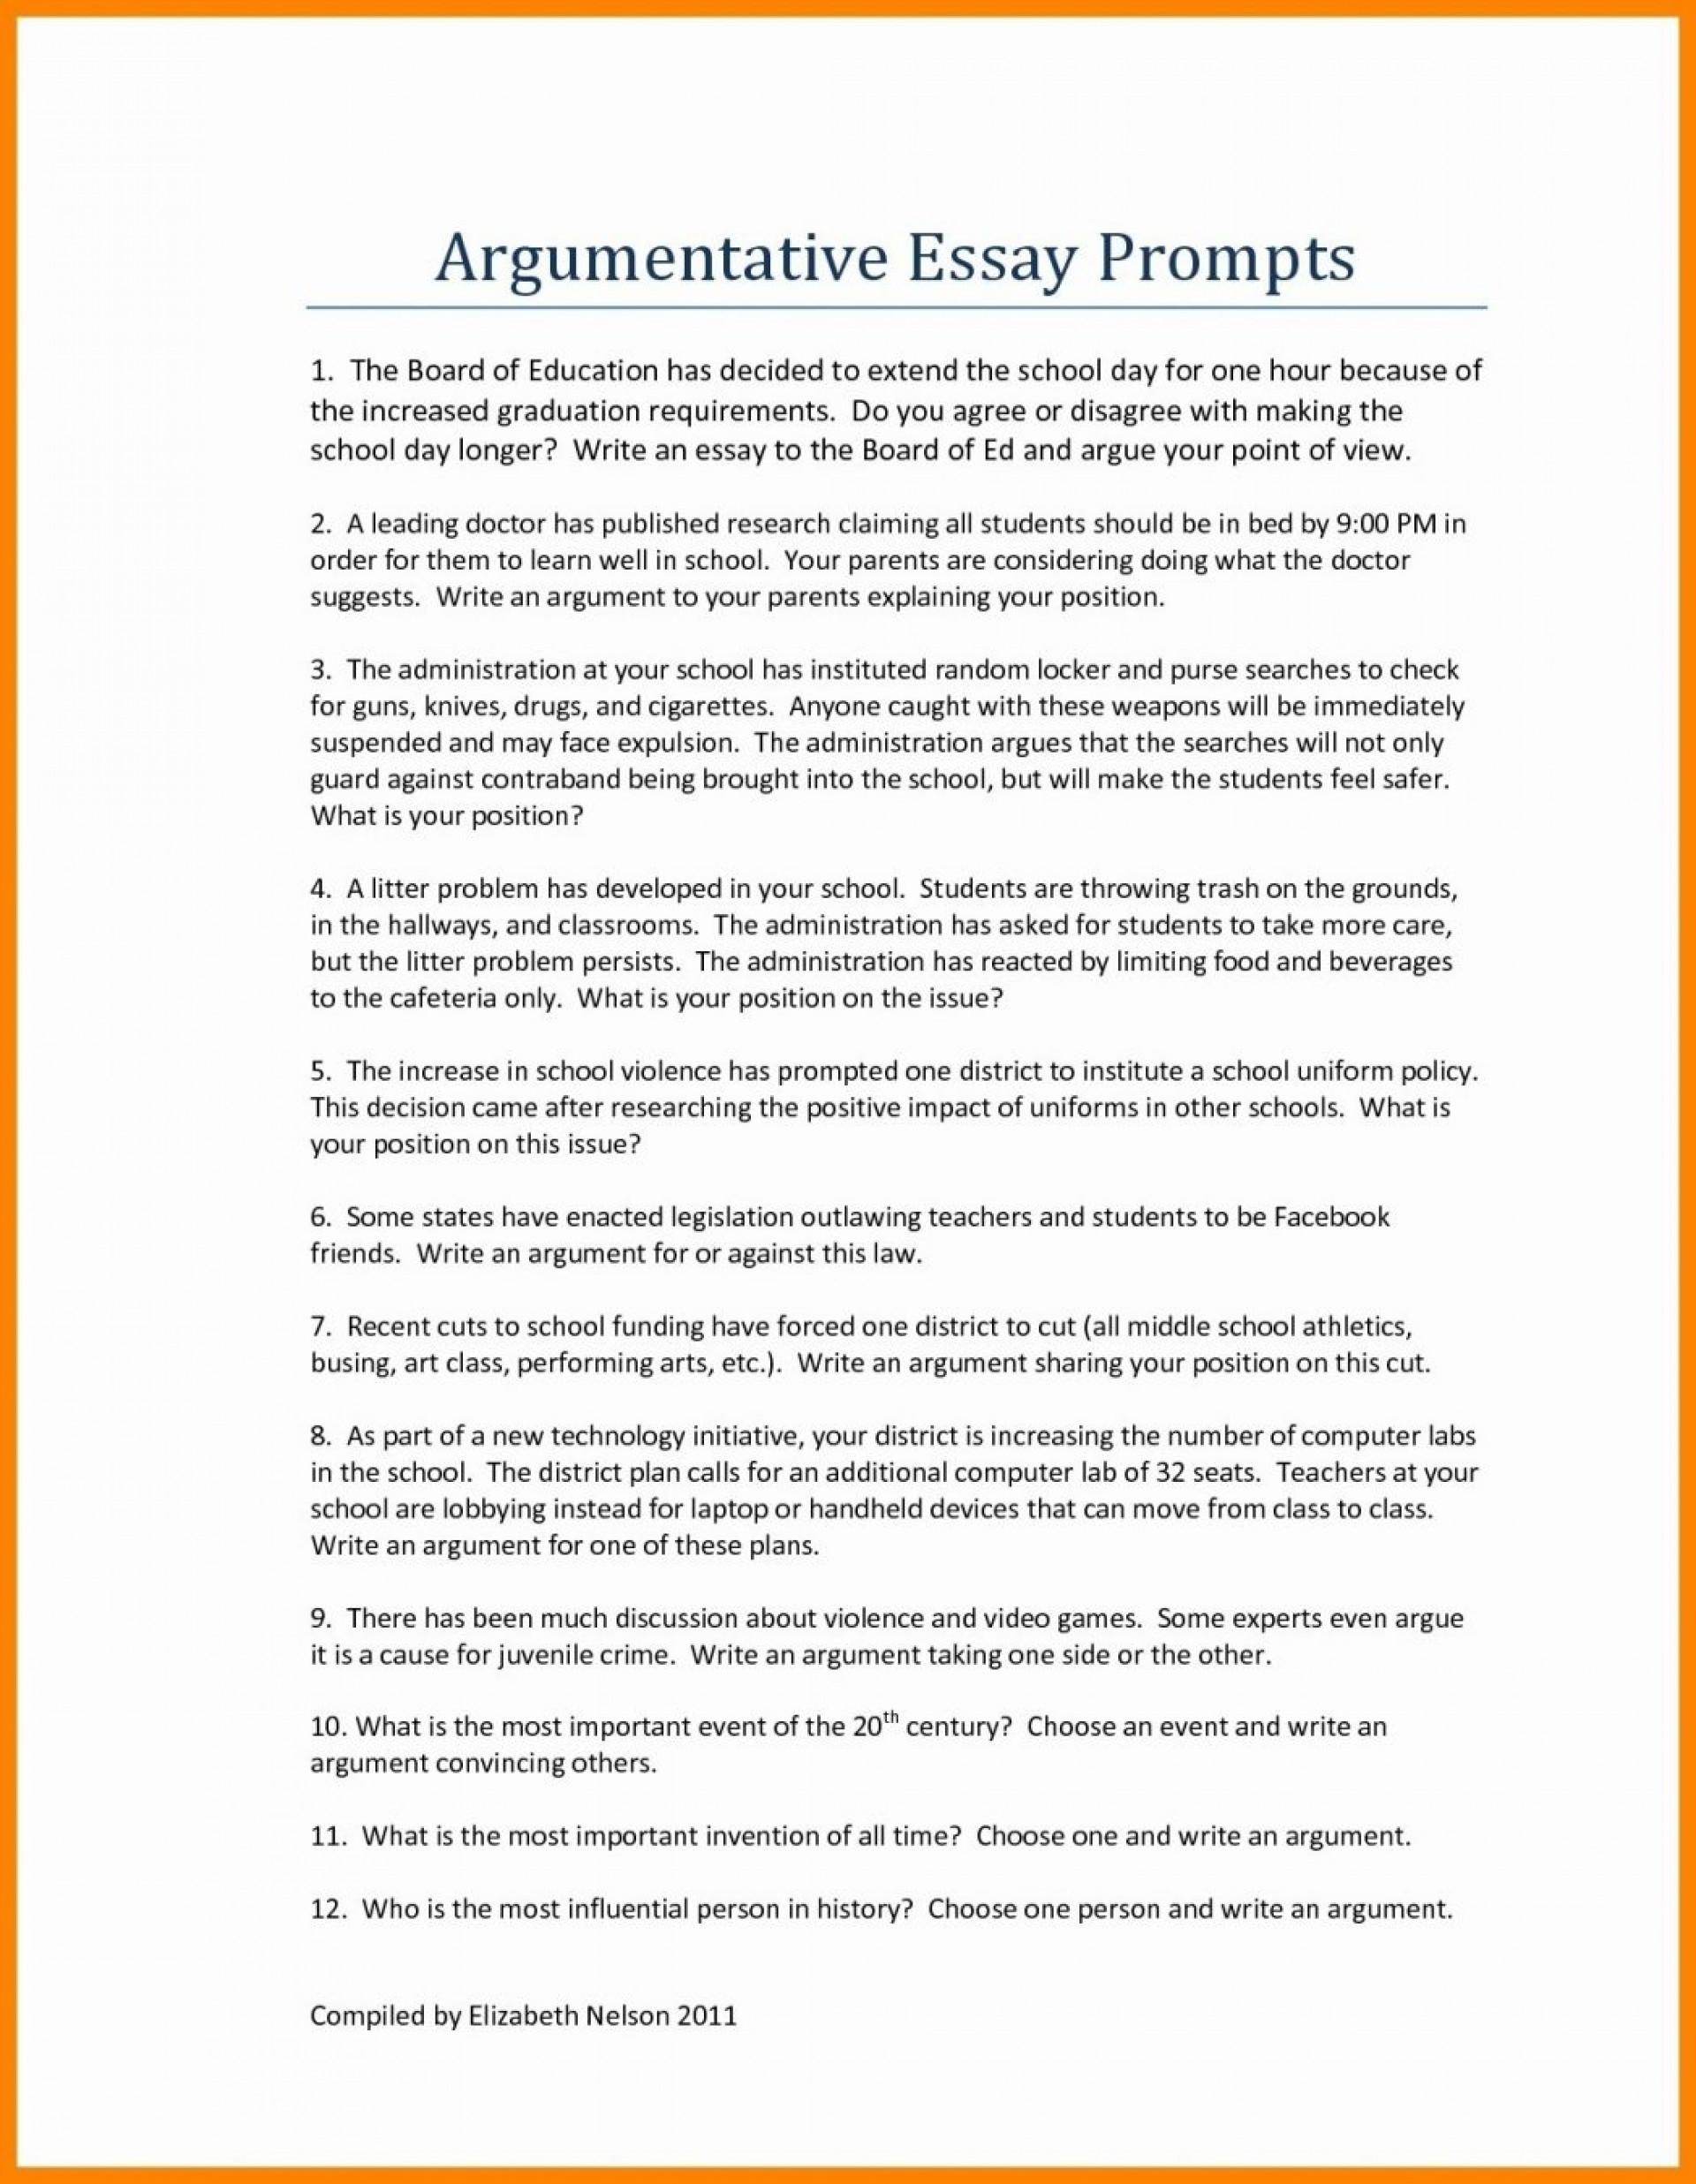 012 Good Persuasive Essay Topics For Middlel As Well Argumentative Hooks Examples Printables Corner College Thesis Conclusion Introduction Pdf 1048x1350 Unique Middle School Easy With Articles Funny 1920